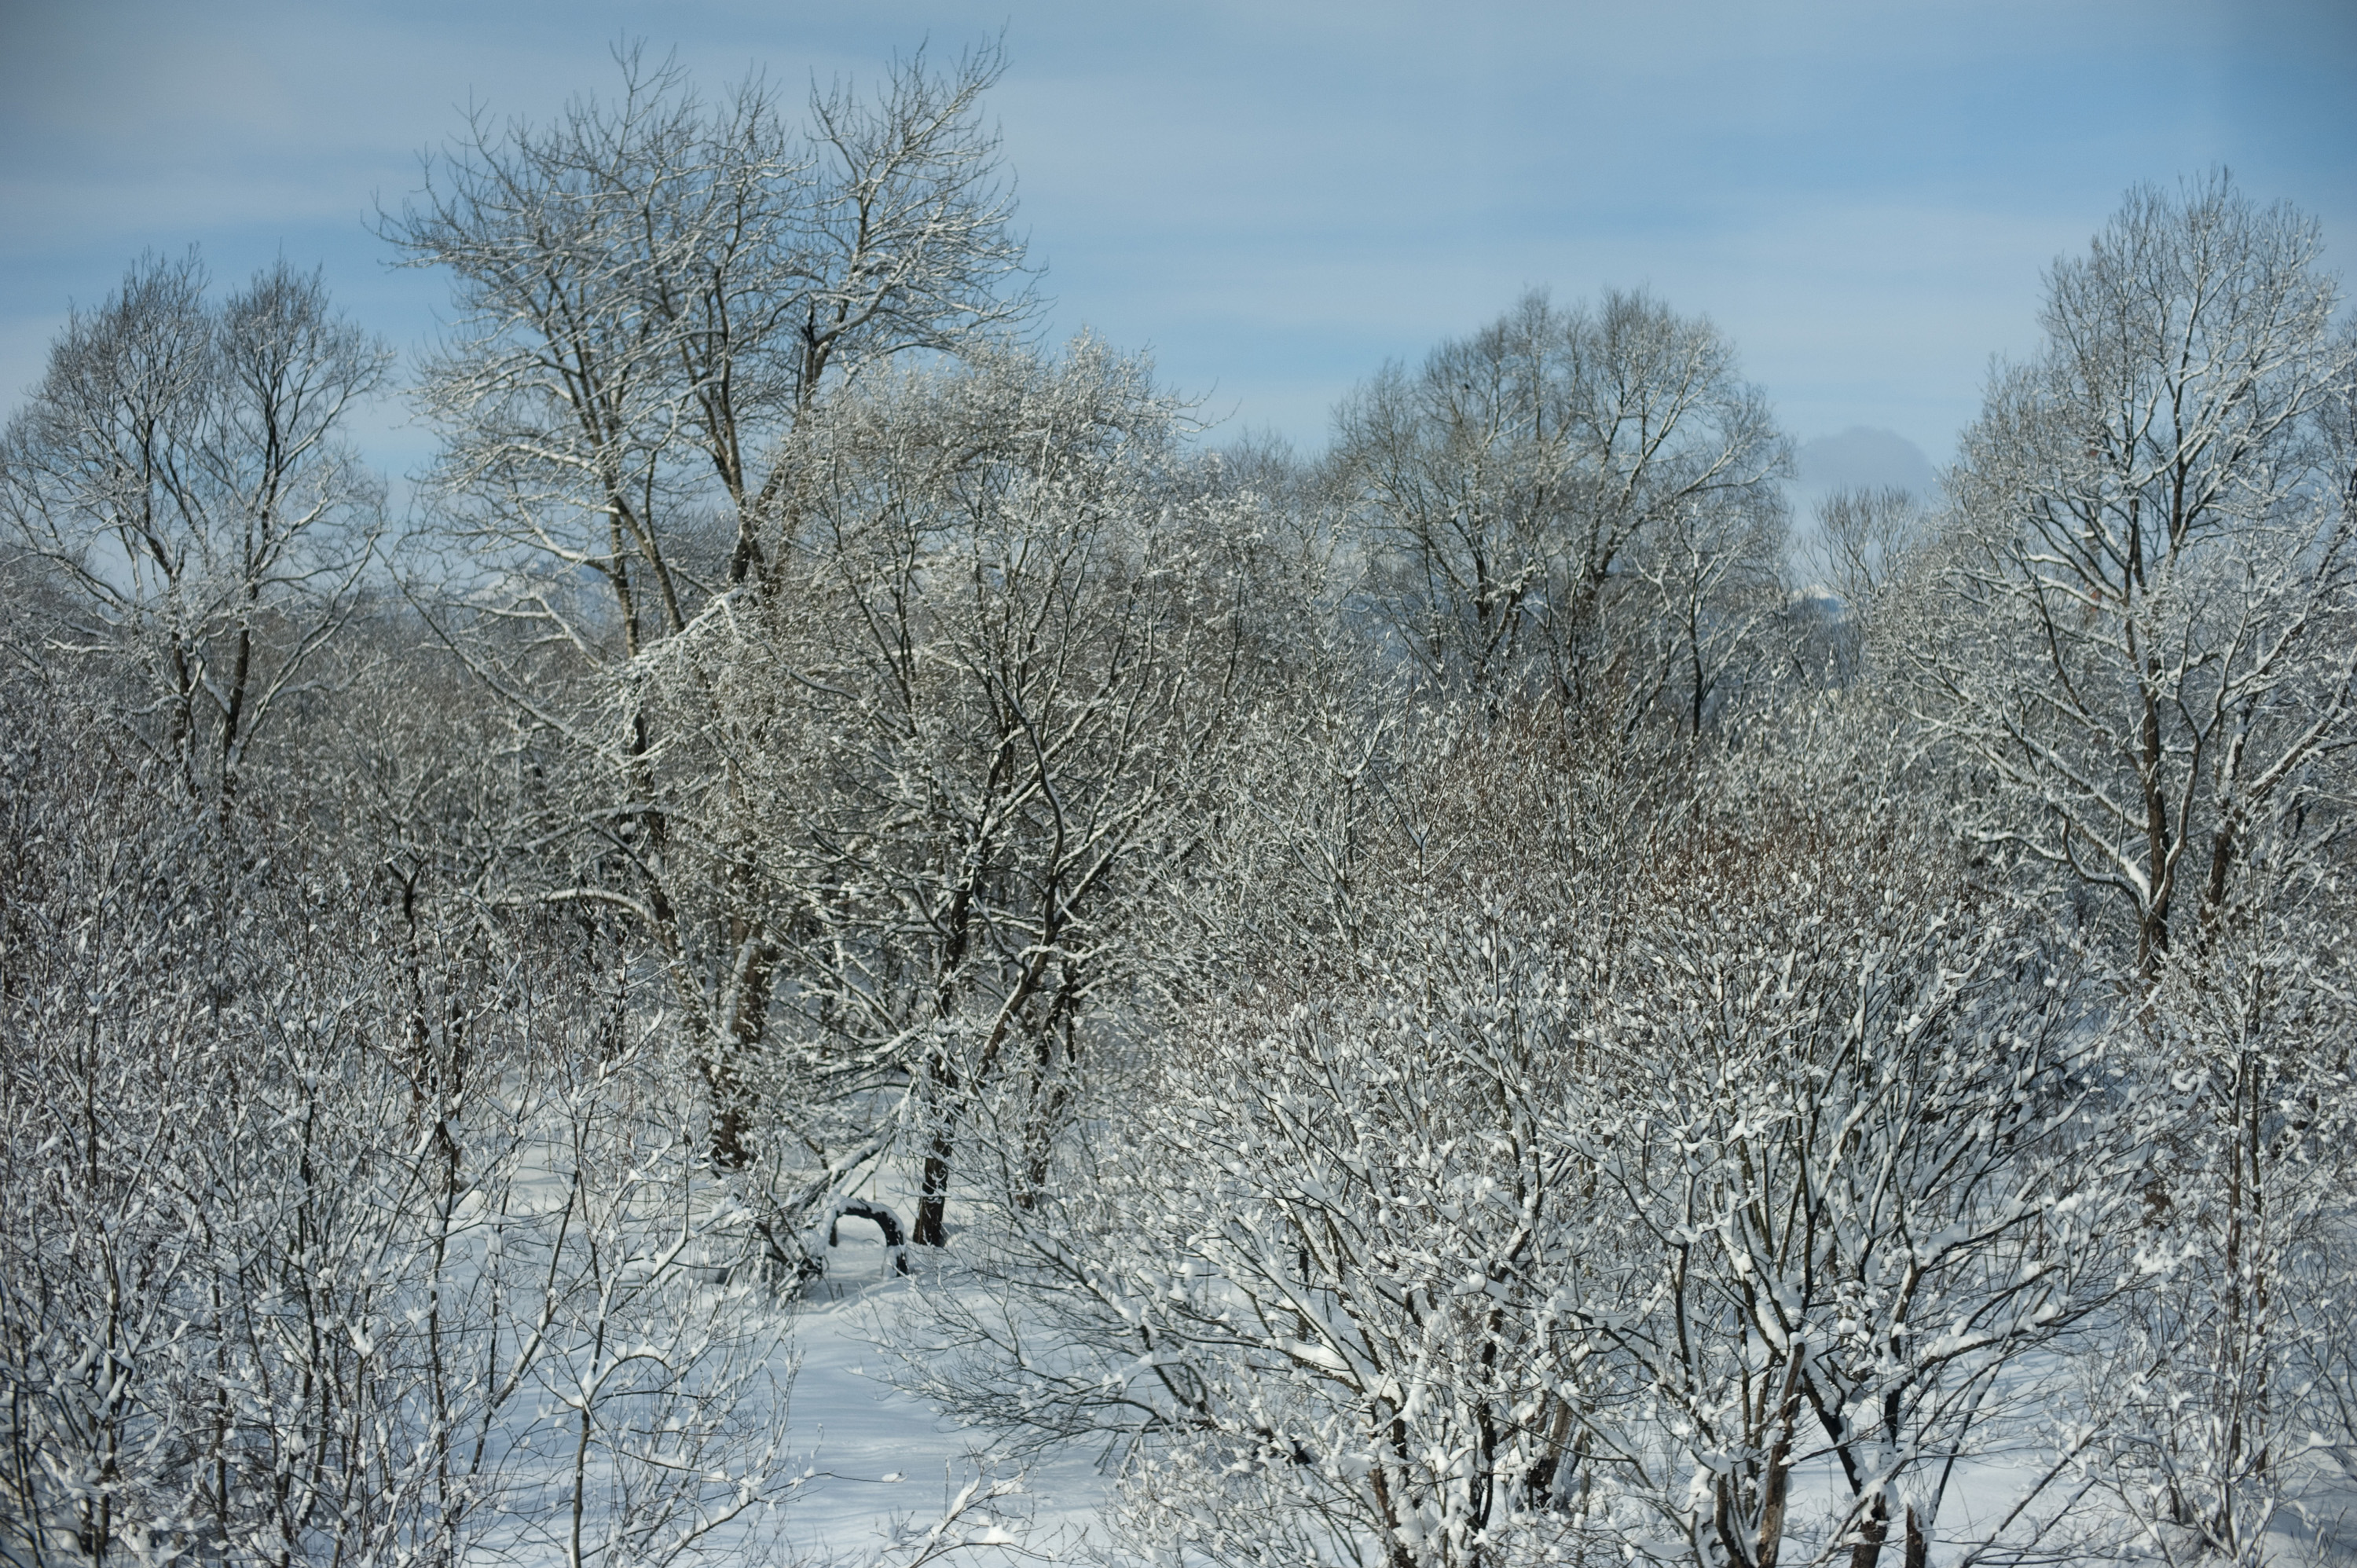 a view across a snow covered woodland landscape